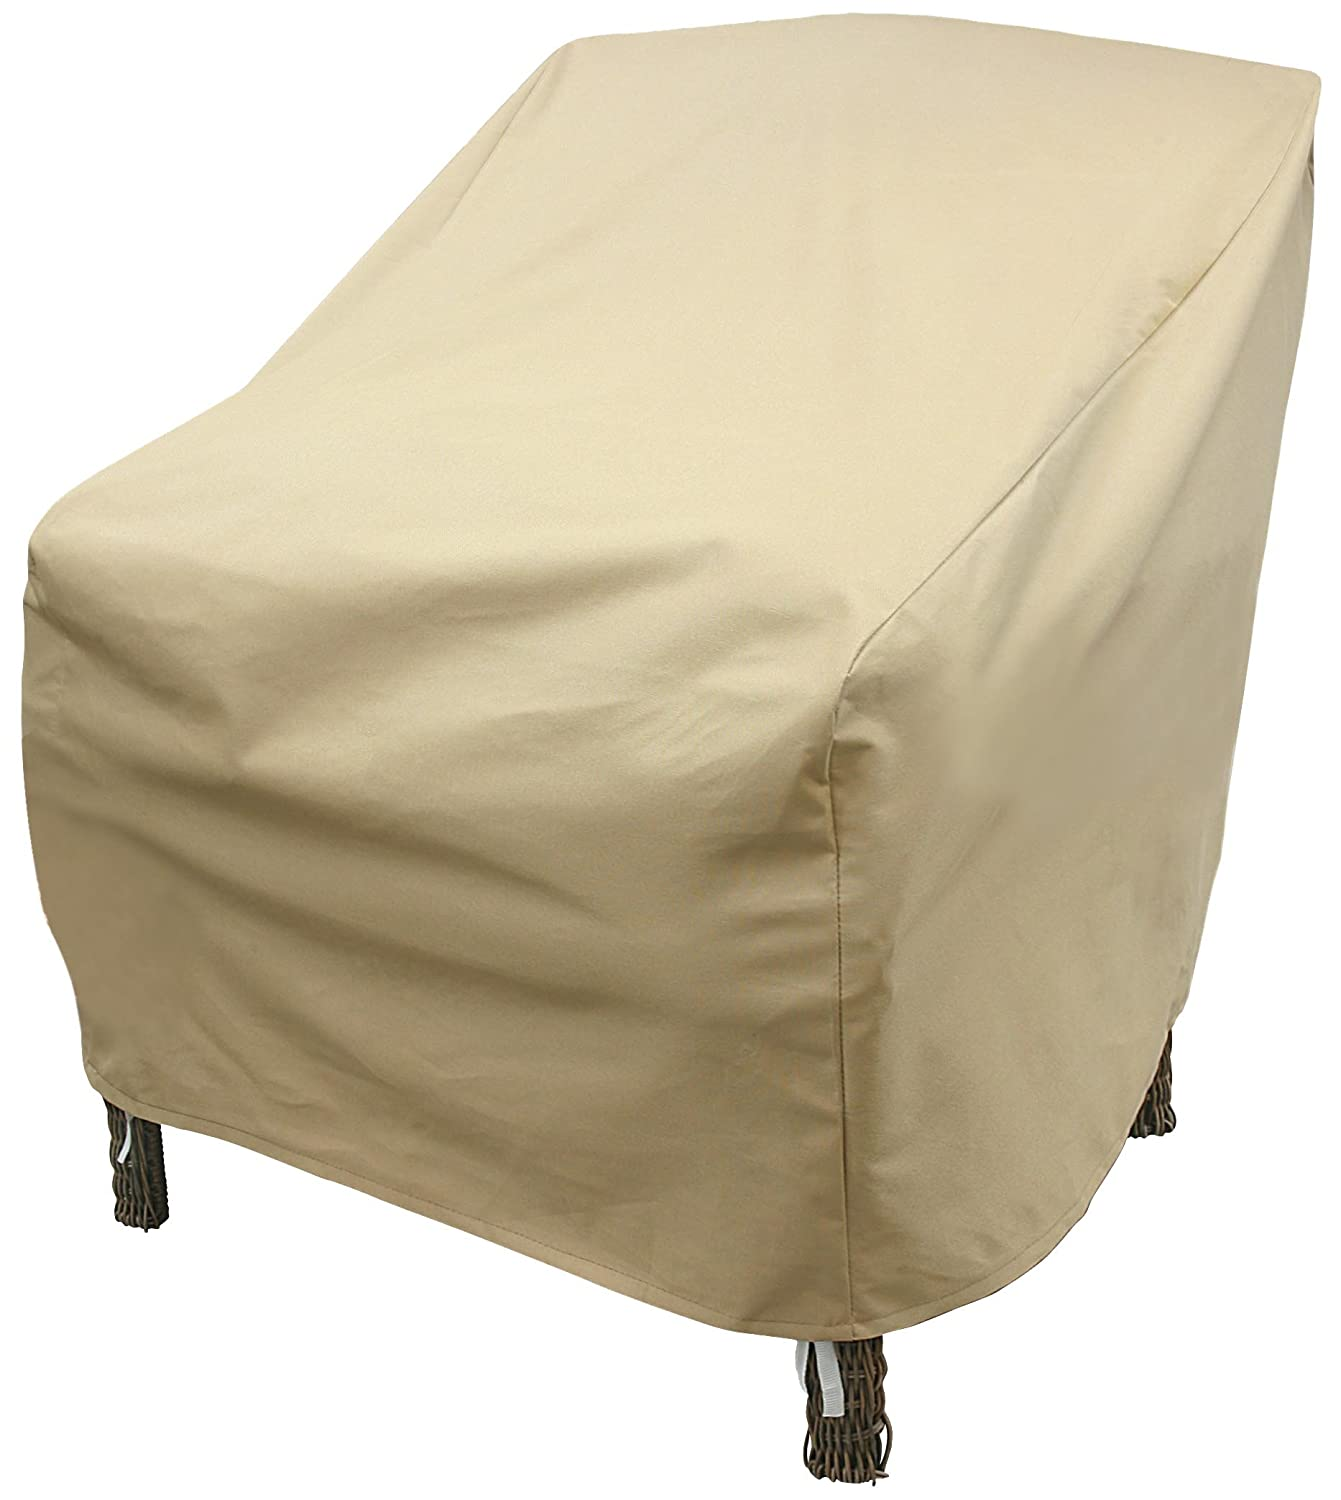 Amazon Modern Leisure Patio Chair Cover Outdoor Chair